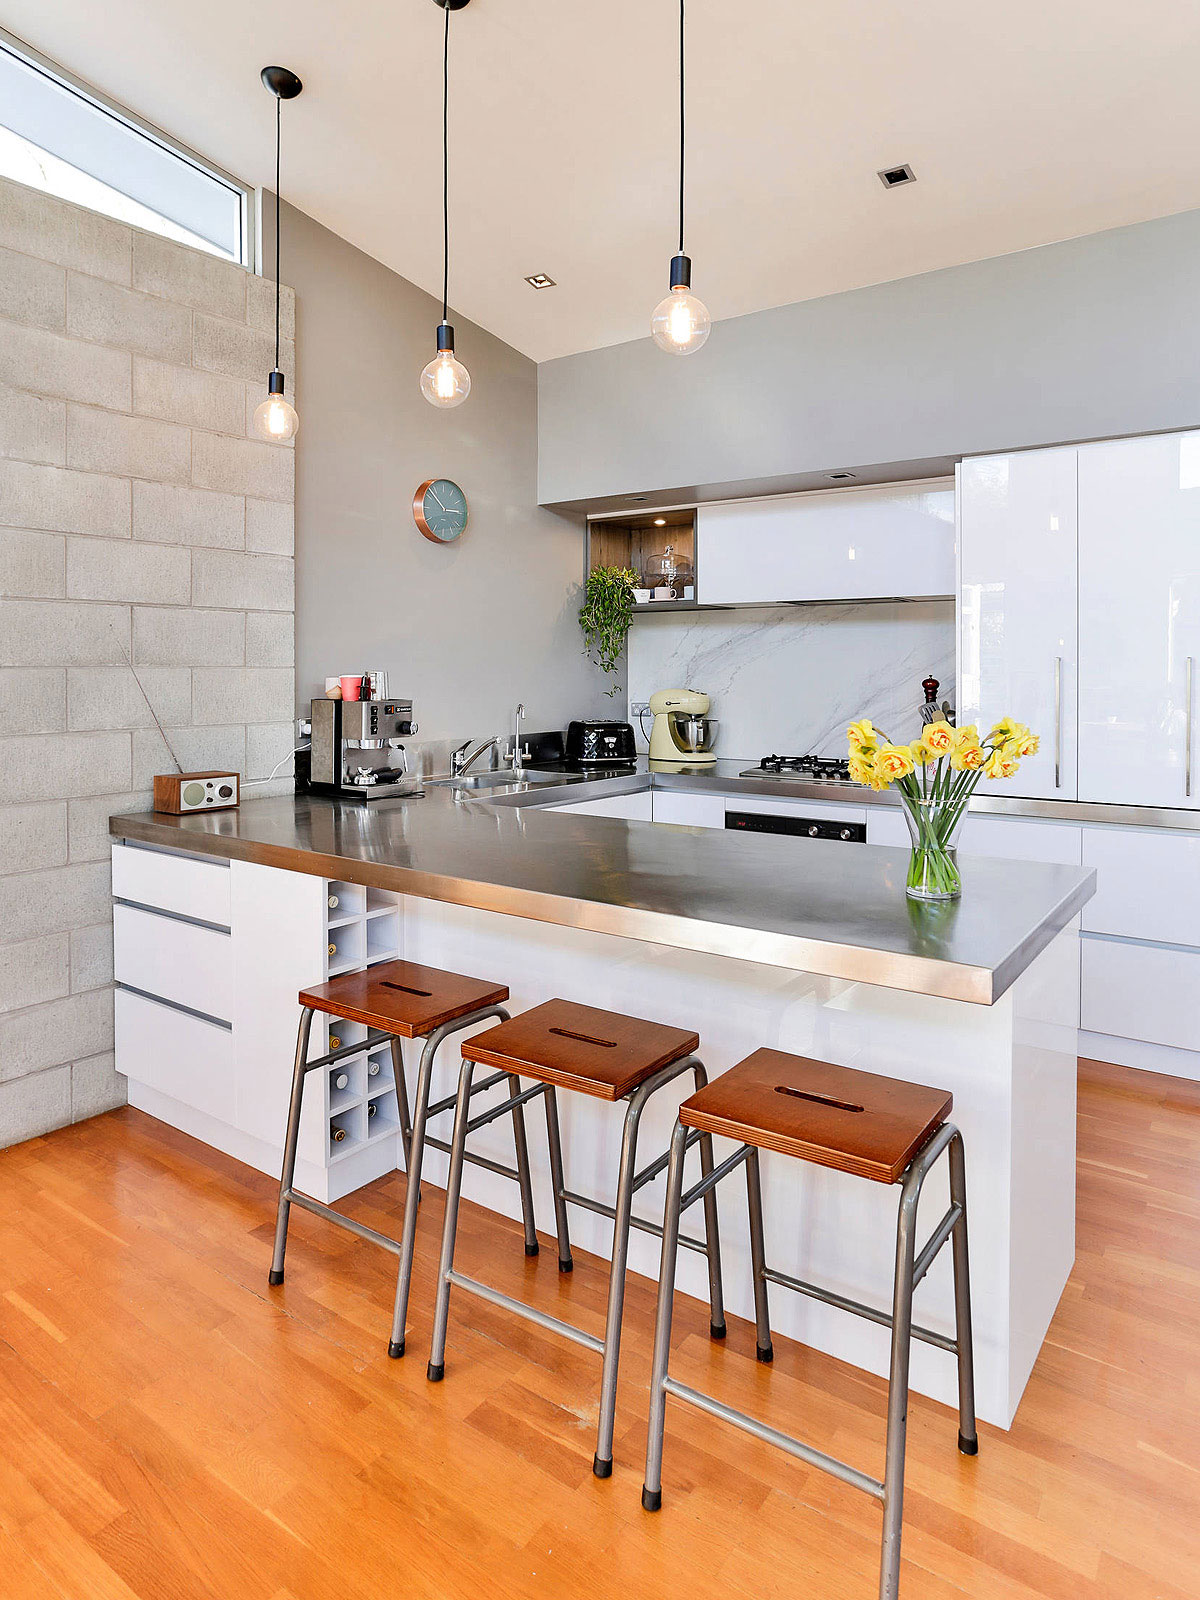 84+ Stainless Steel Countertop Ideas, Photos Pros & Cons